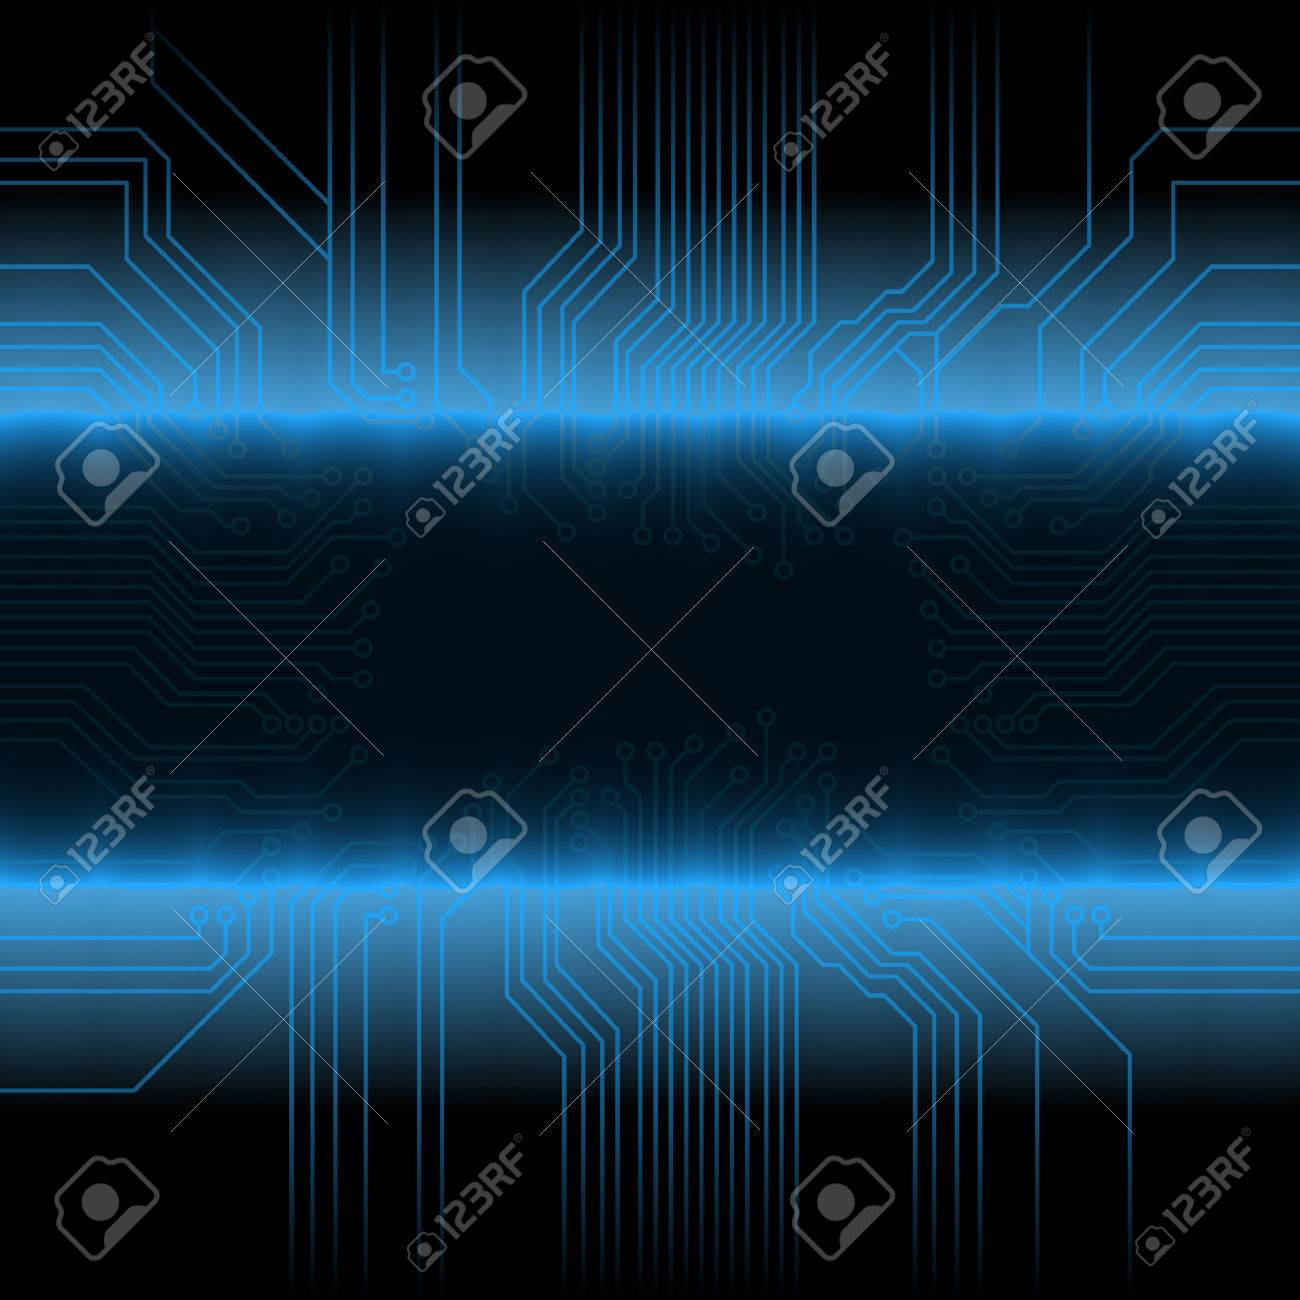 Vector illustration of a glowing circuitry board design with central frame for custom elements. Detailed gradient fading. - 4039132